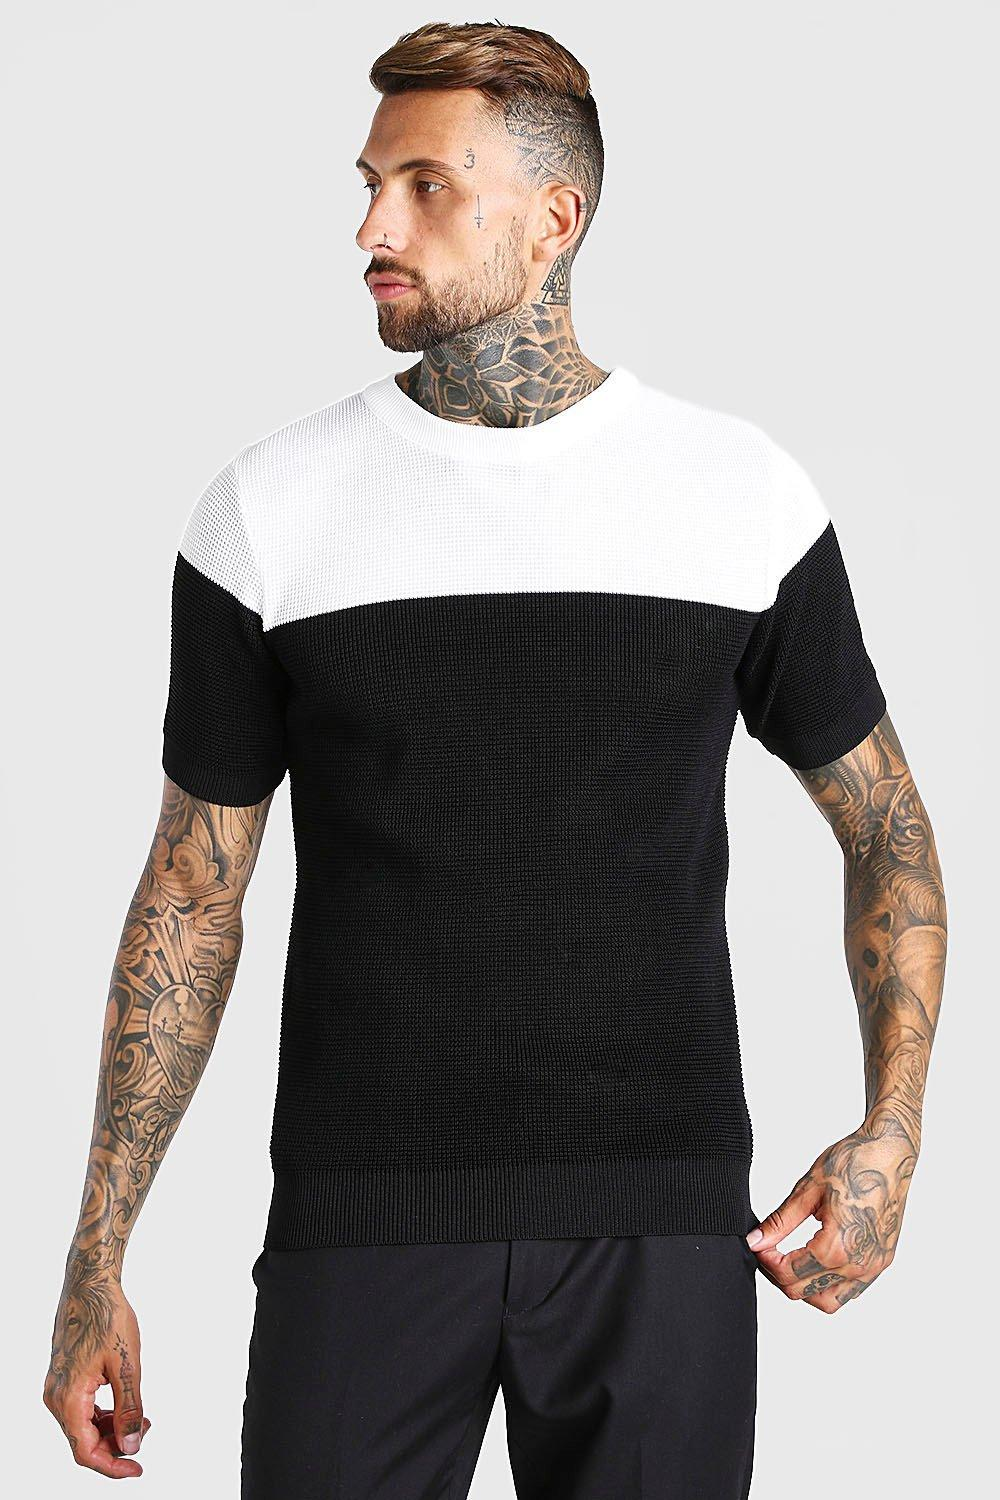 1960s Men's Clothing Mens Contrast Muscle Fit Knitted T-Shirt - Black $18.00 AT vintagedancer.com